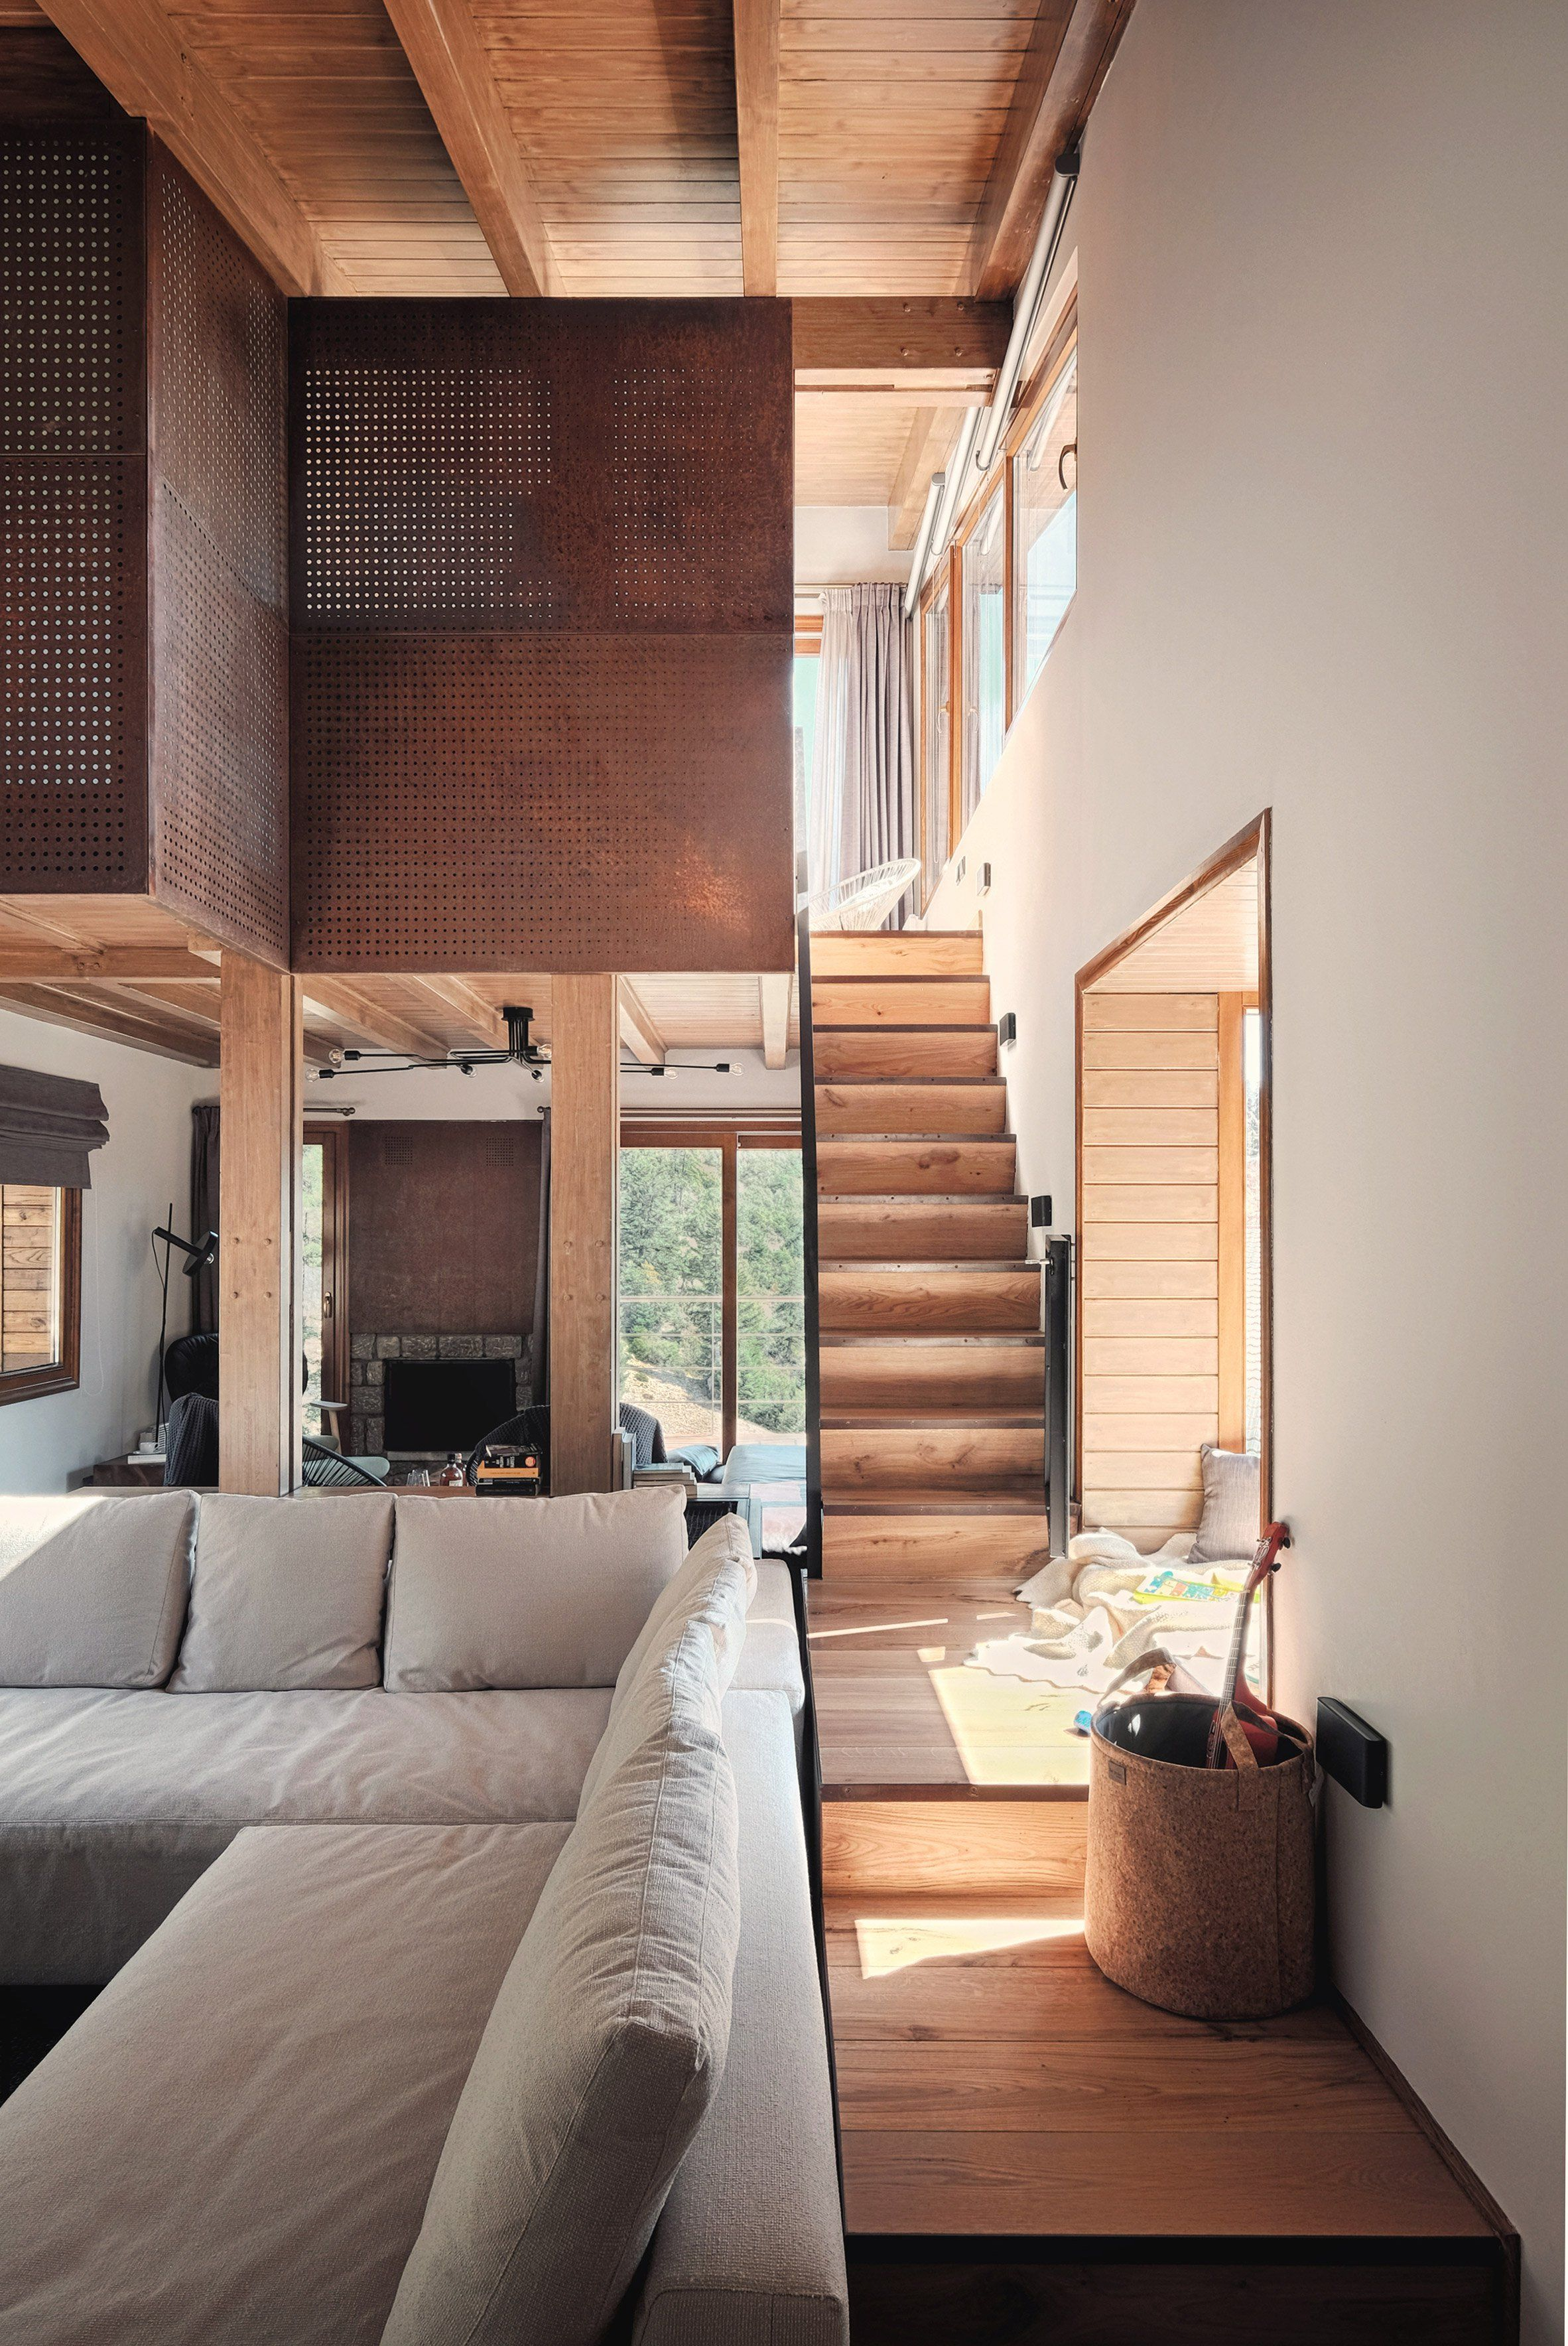 Chalet by Kokosalaki Architecture | Belmont guest house | Pinterest on indian mountain homes, european mountain homes, moonlight mountain homes, swiss mountain homes, asian mountain homes, modern mountain homes, canadian mountain homes, chinese mountain homes,